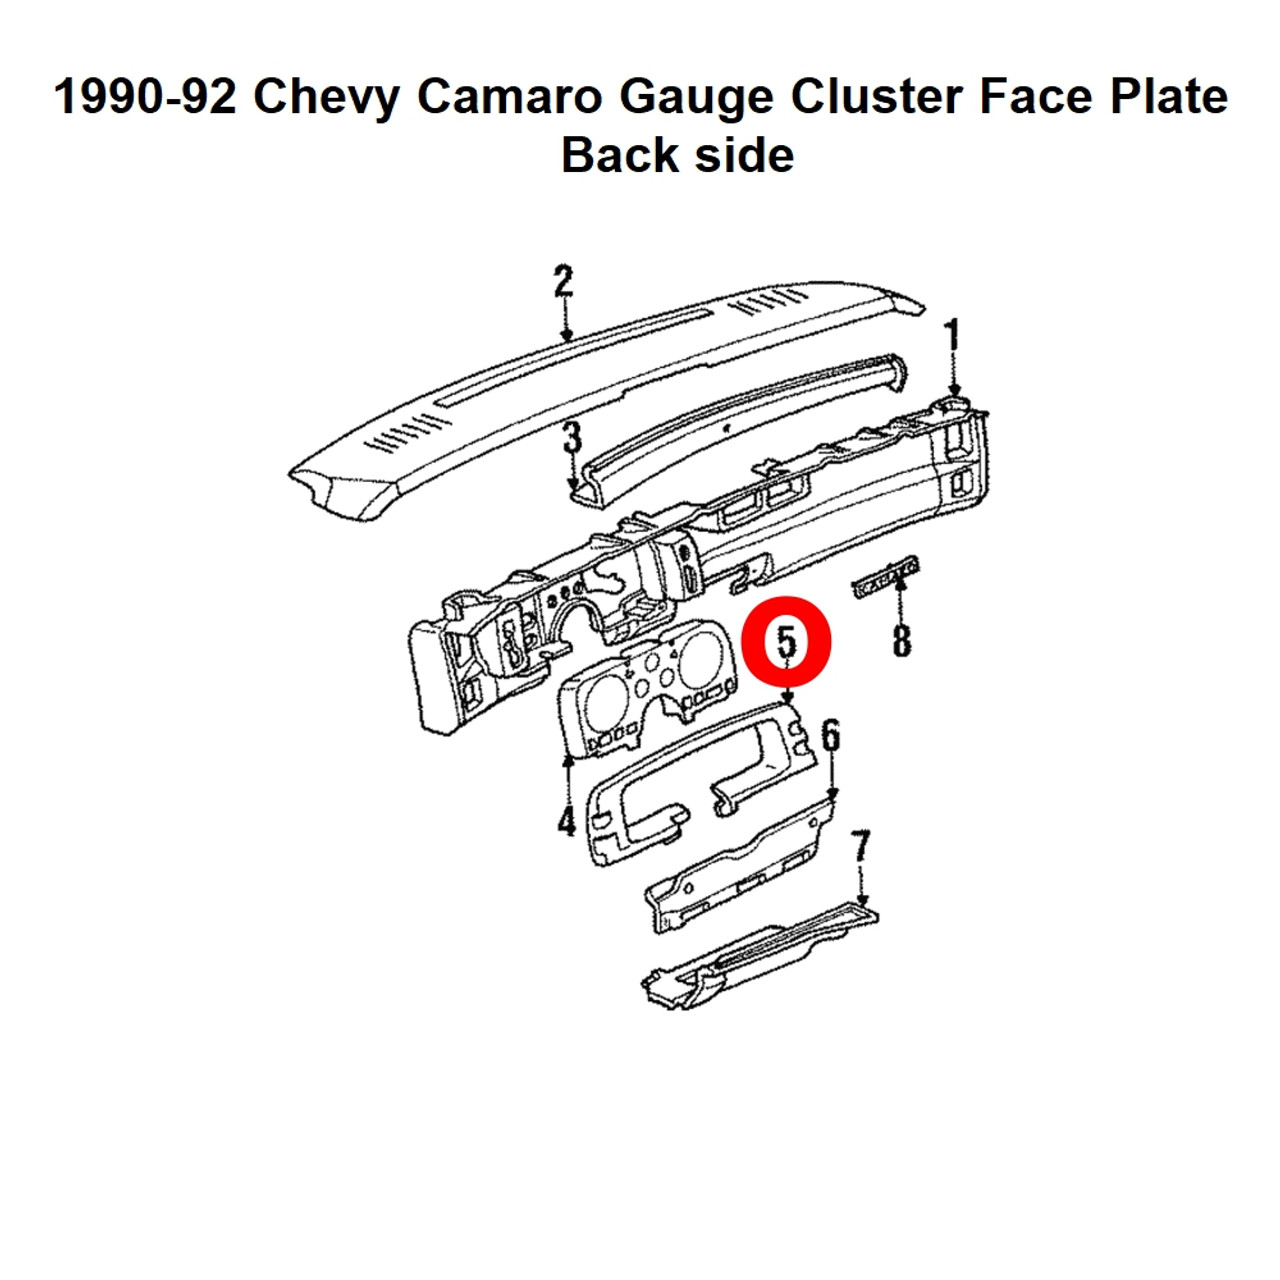 1990-92 Chevy Camaro Gauge Cluster Face Plate - Location diagram